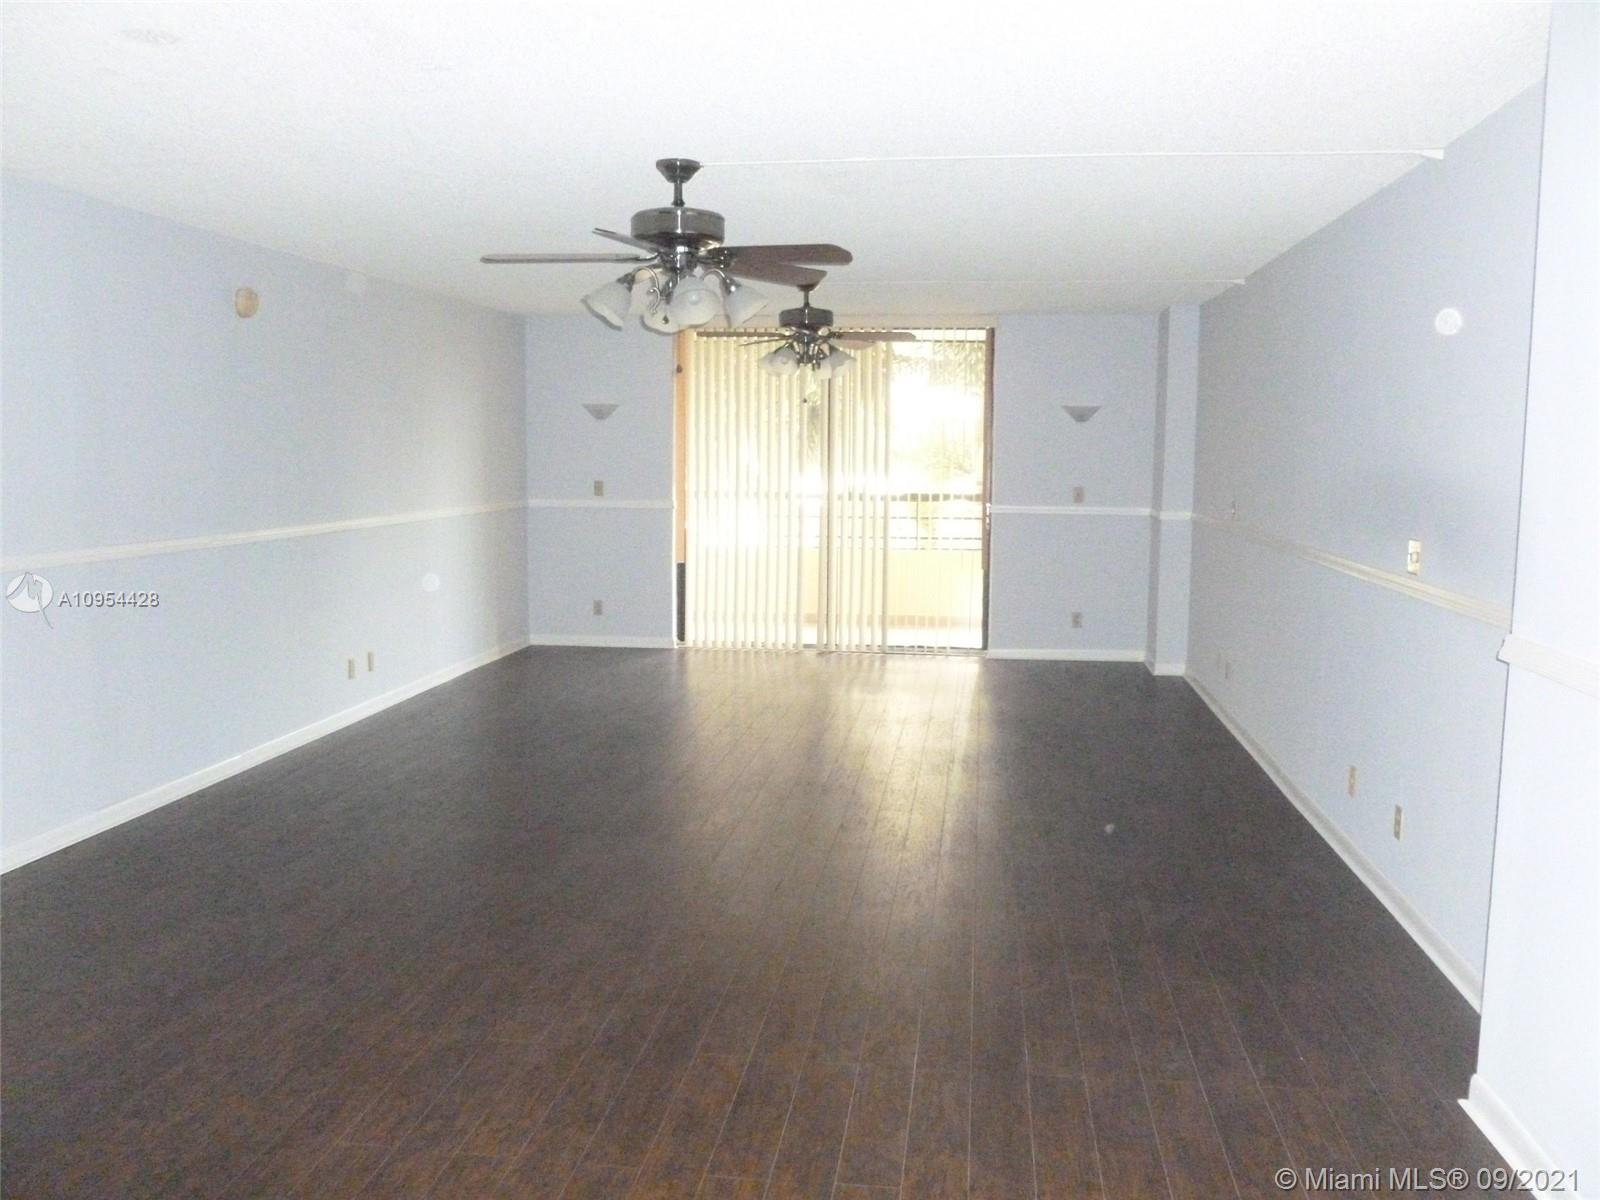 Photo of 2500 Parkview Dr #411, Hallandale Beach, Florida, 33009 - UPDATED CONTEMPORARY KITCHEN